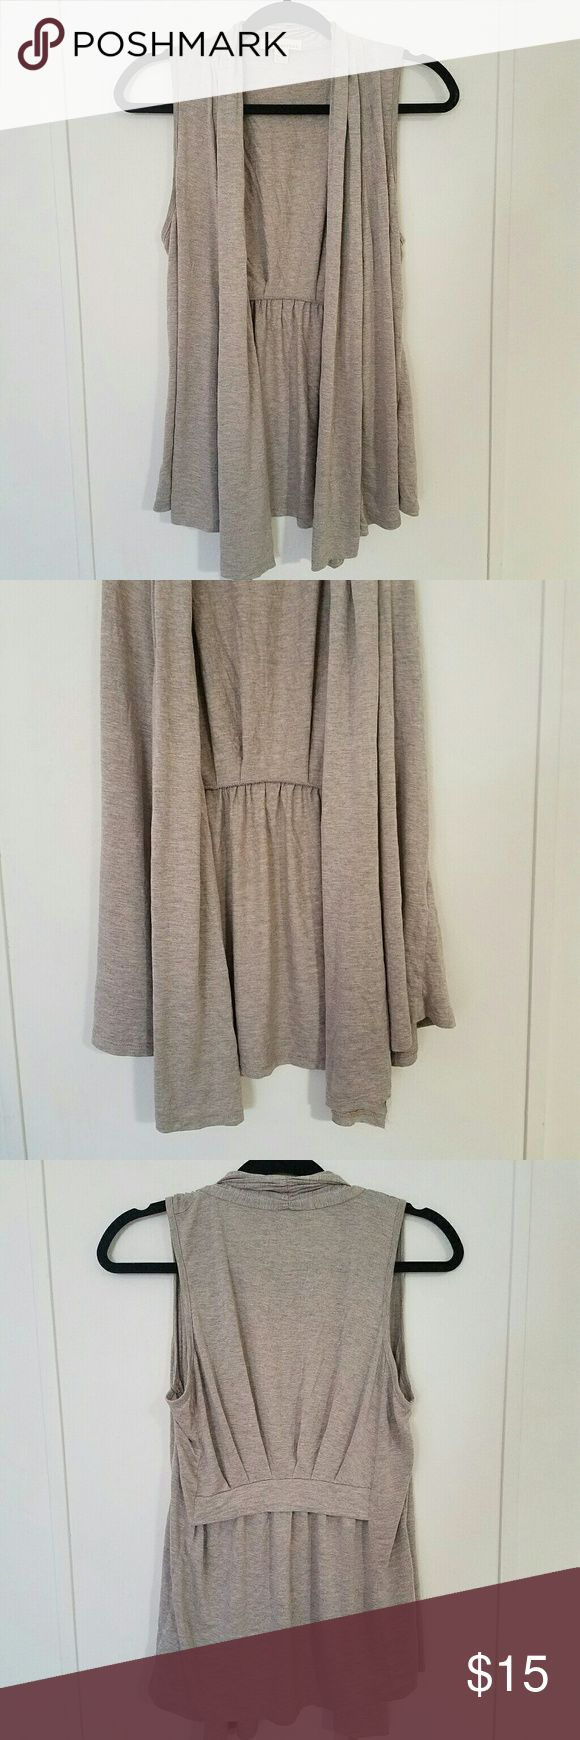 F21 Drape Front Sleeveless Cardigan Forever 21 sleeveless drape front cardigan.  Light gray.  Super soft and versatile!  Cute design on back.  Only worn once or twice!  Excellent, like new condition!  Size Medium, but can fit small too! Forever 21 Sweaters Cardigans